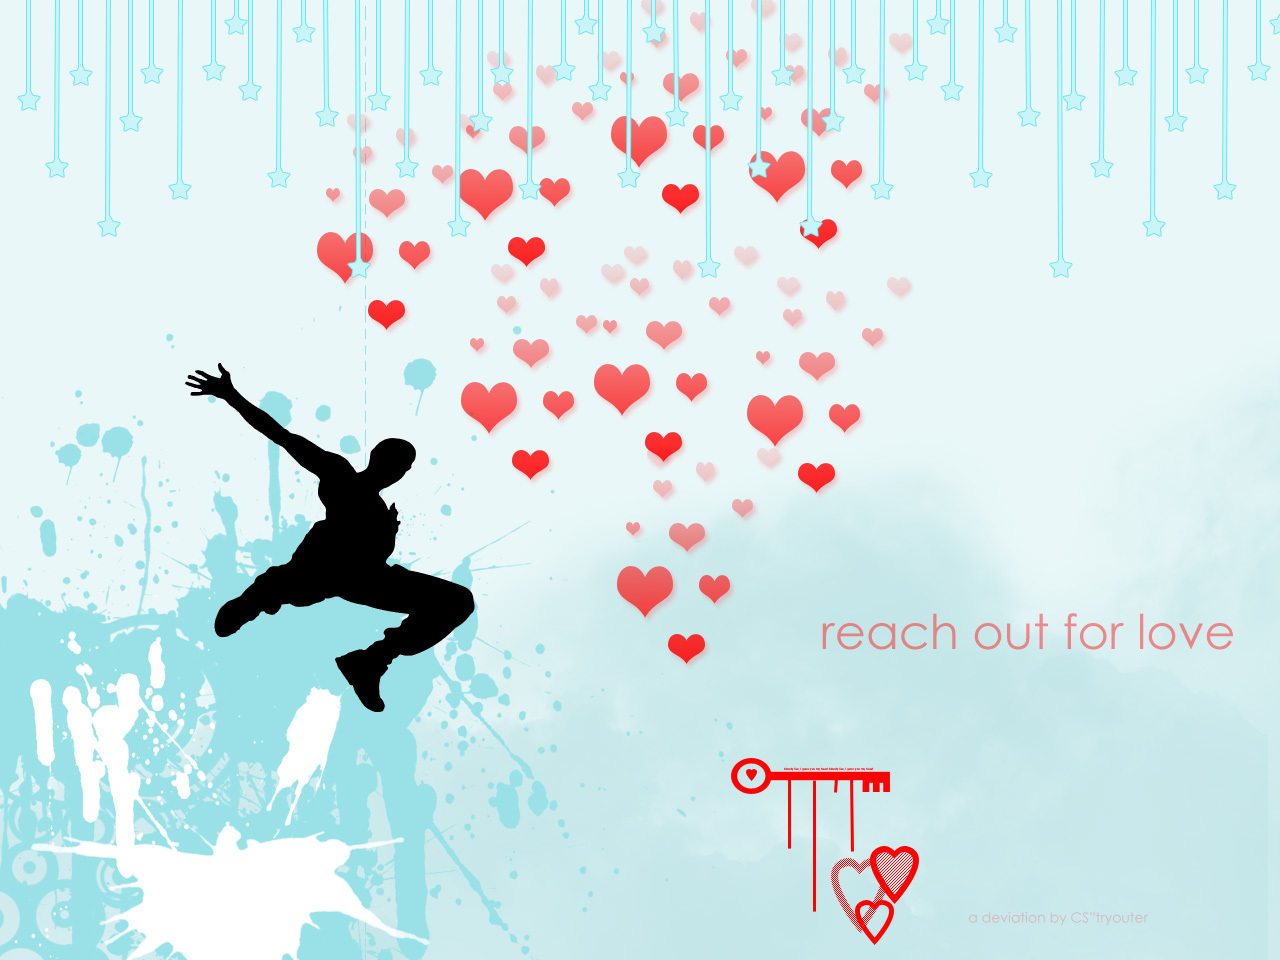 reach out for love HD Wallpaper